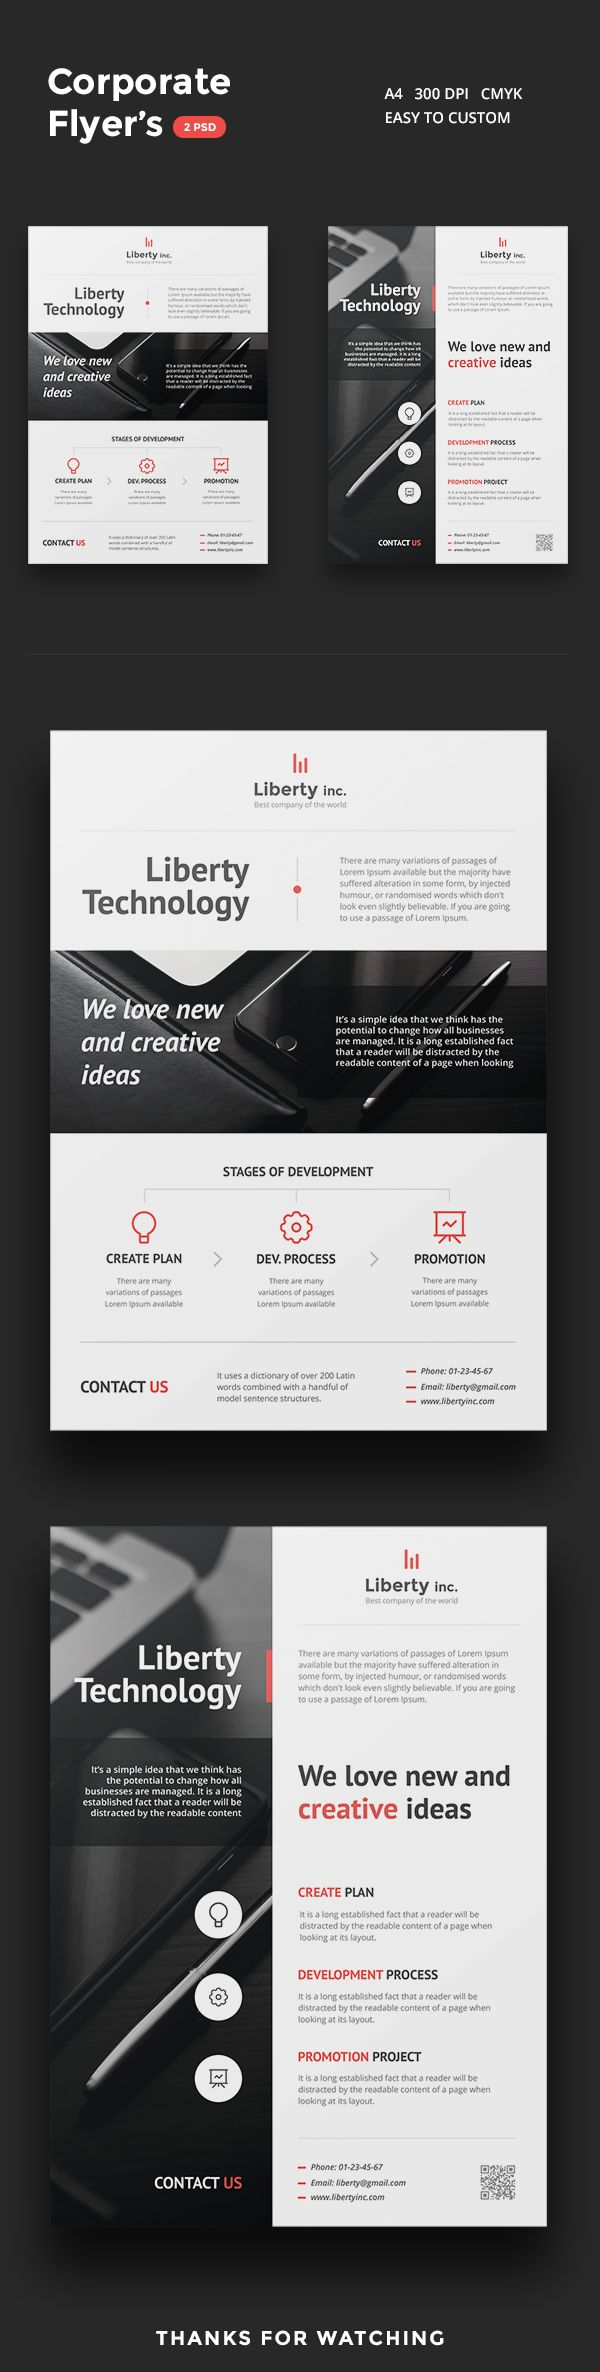 Corporate Flyers on Behance